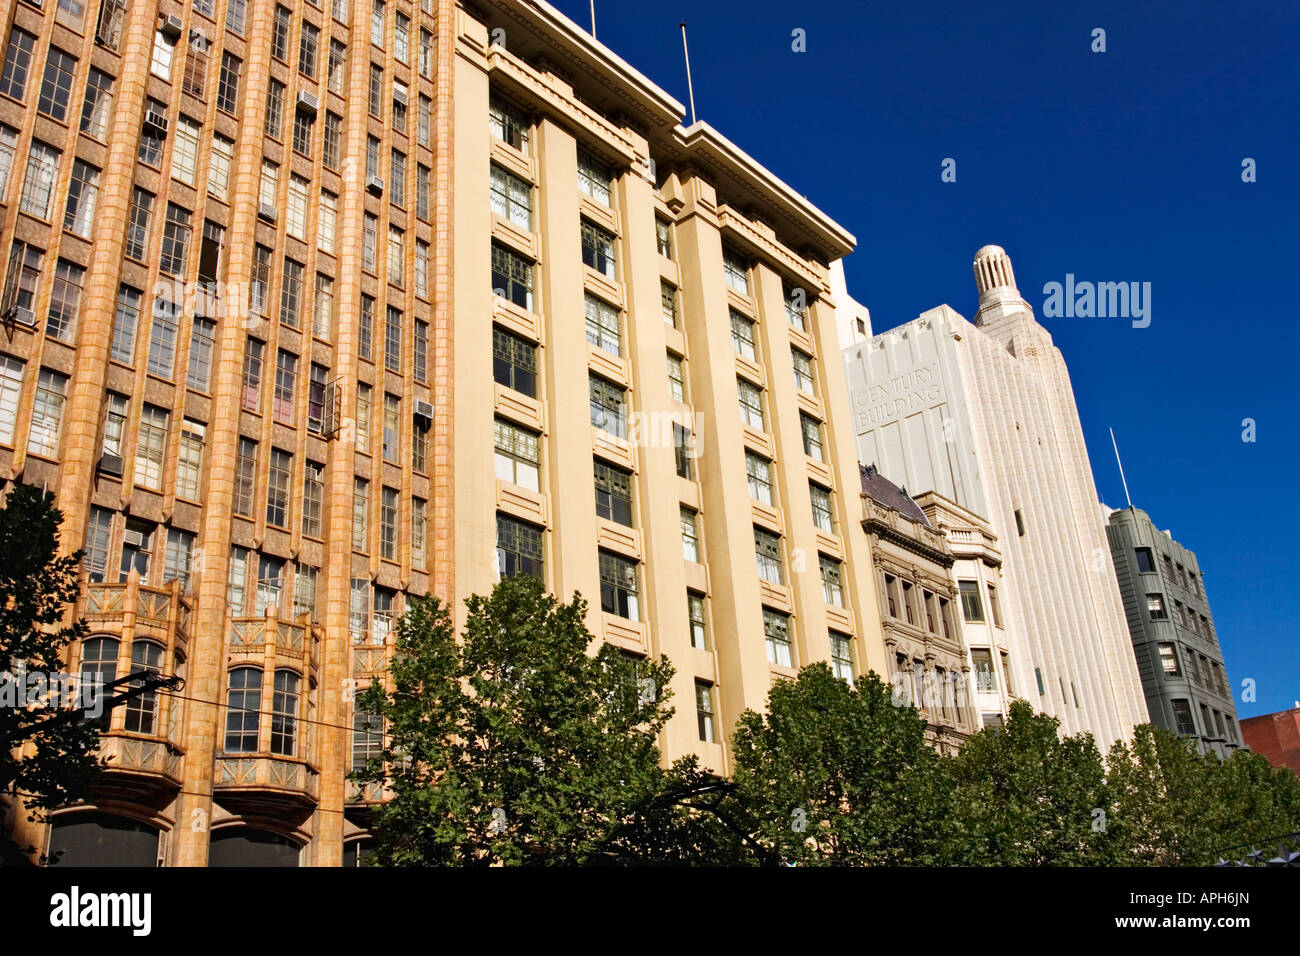 Melbourne Scenic The Facades Of Art Deco Style Buildings In Stock Photo Alamy